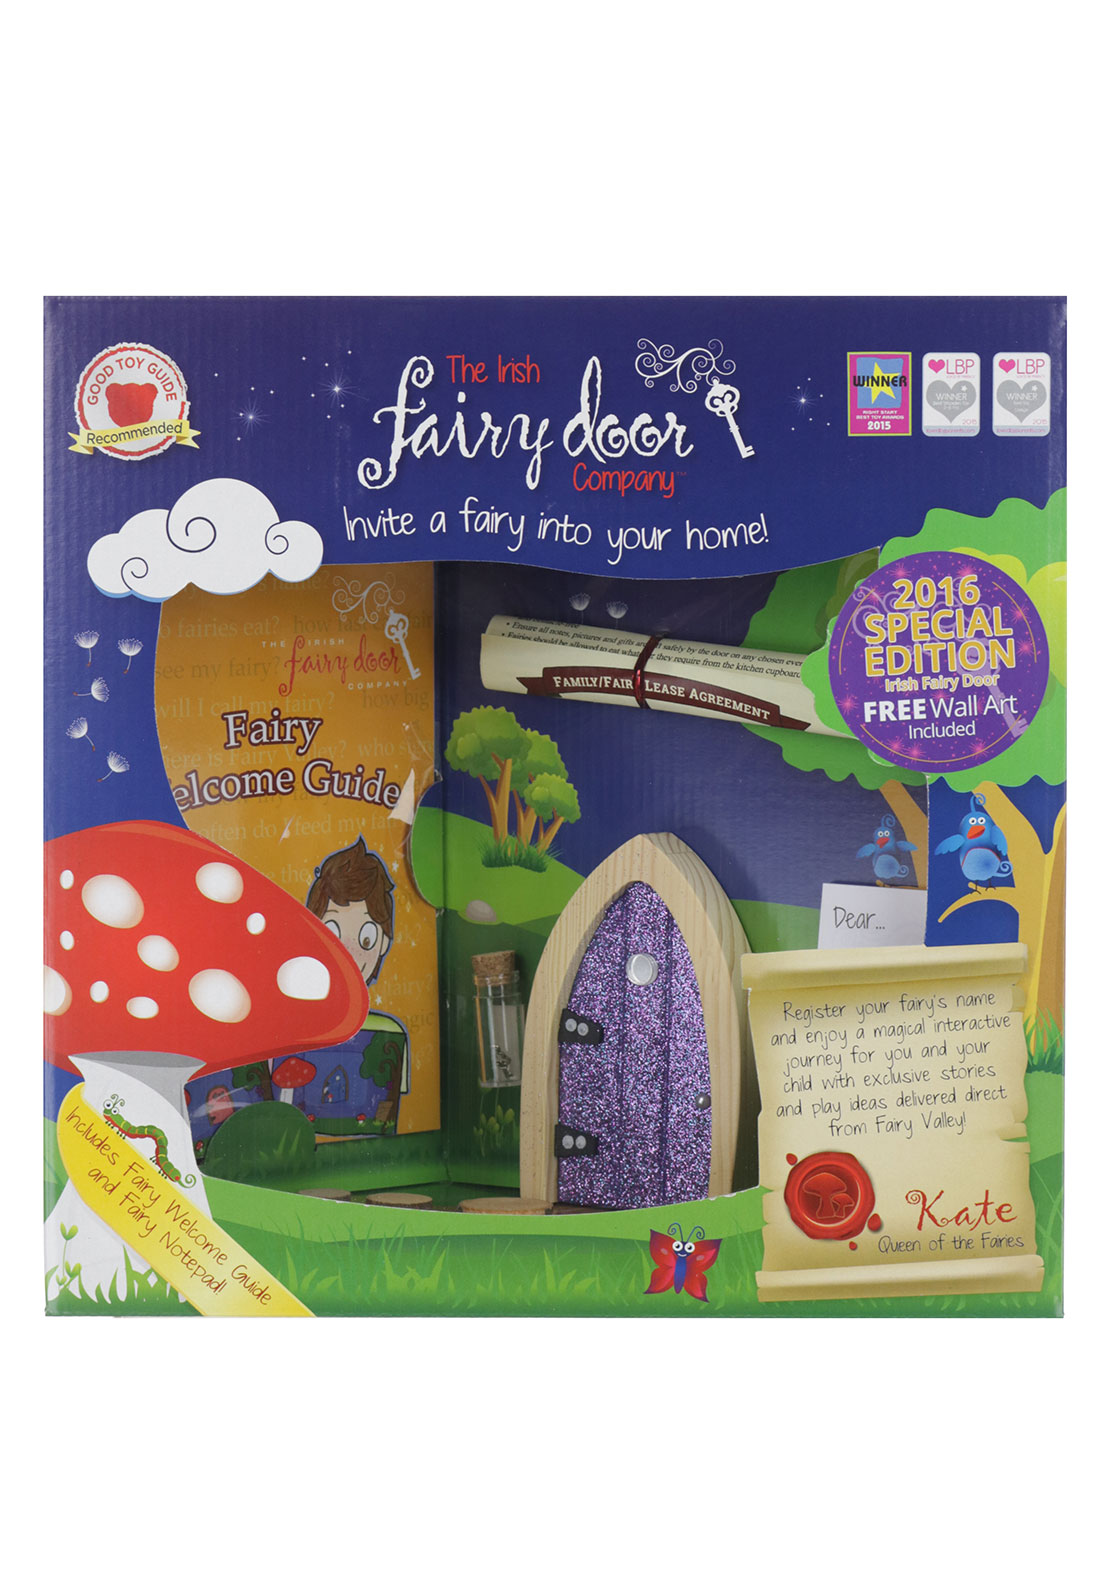 The irish fairy door company special 2016 edition glitter for The irish fairy door company facebook